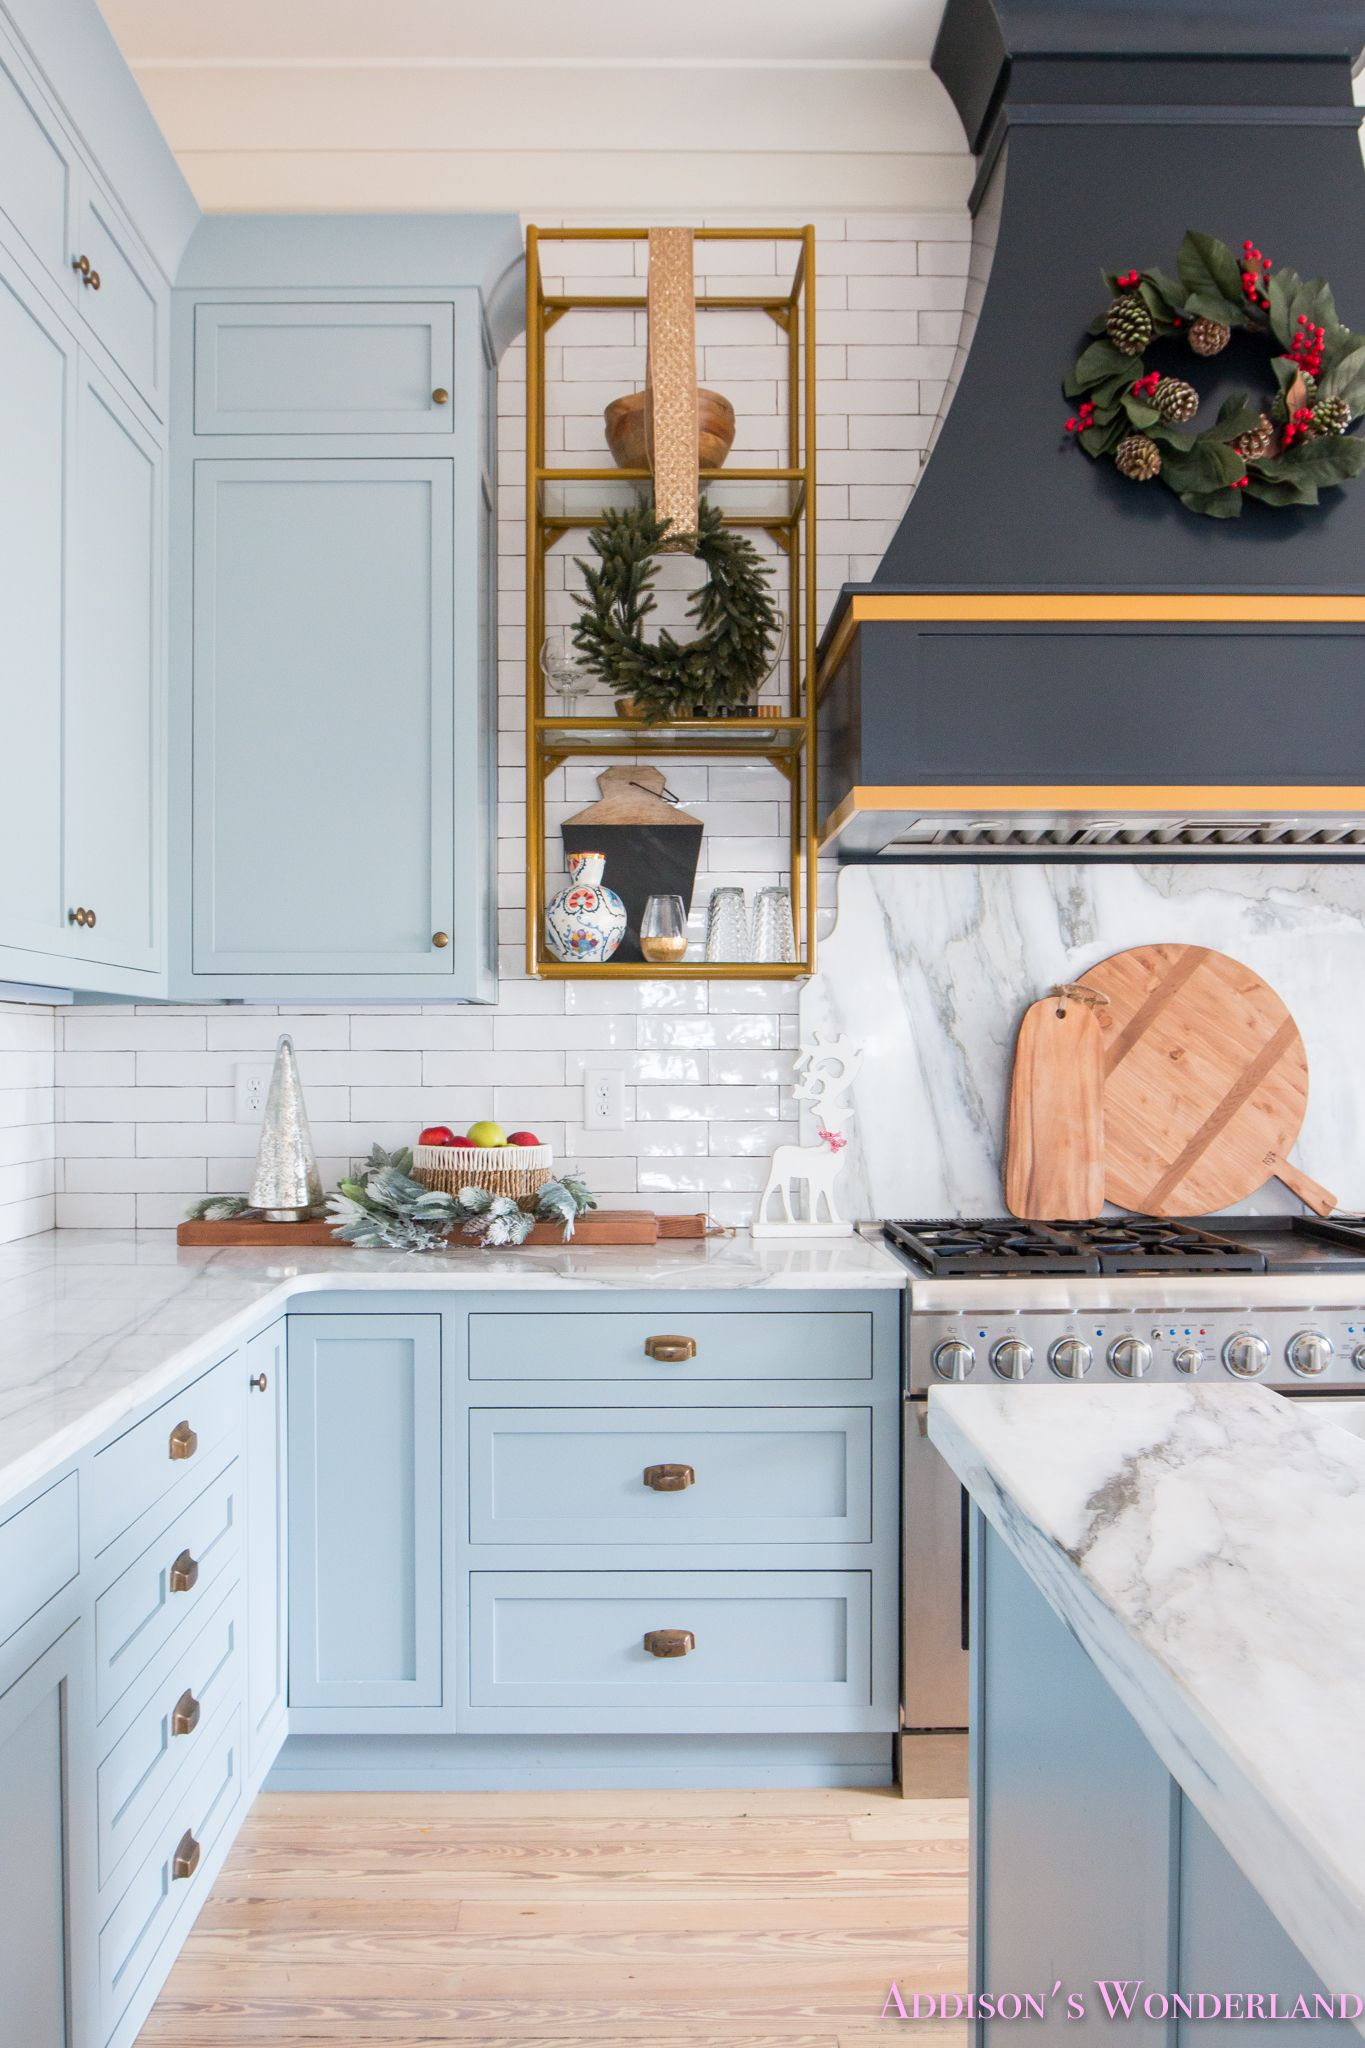 Inside Our Vintage Modern Style Holiday Kitchen... Sharing a peek inside our powder blue and white marble kitchen all decked out for Christmas! : holiday kitchen cabinet - hauntedcathouse.org